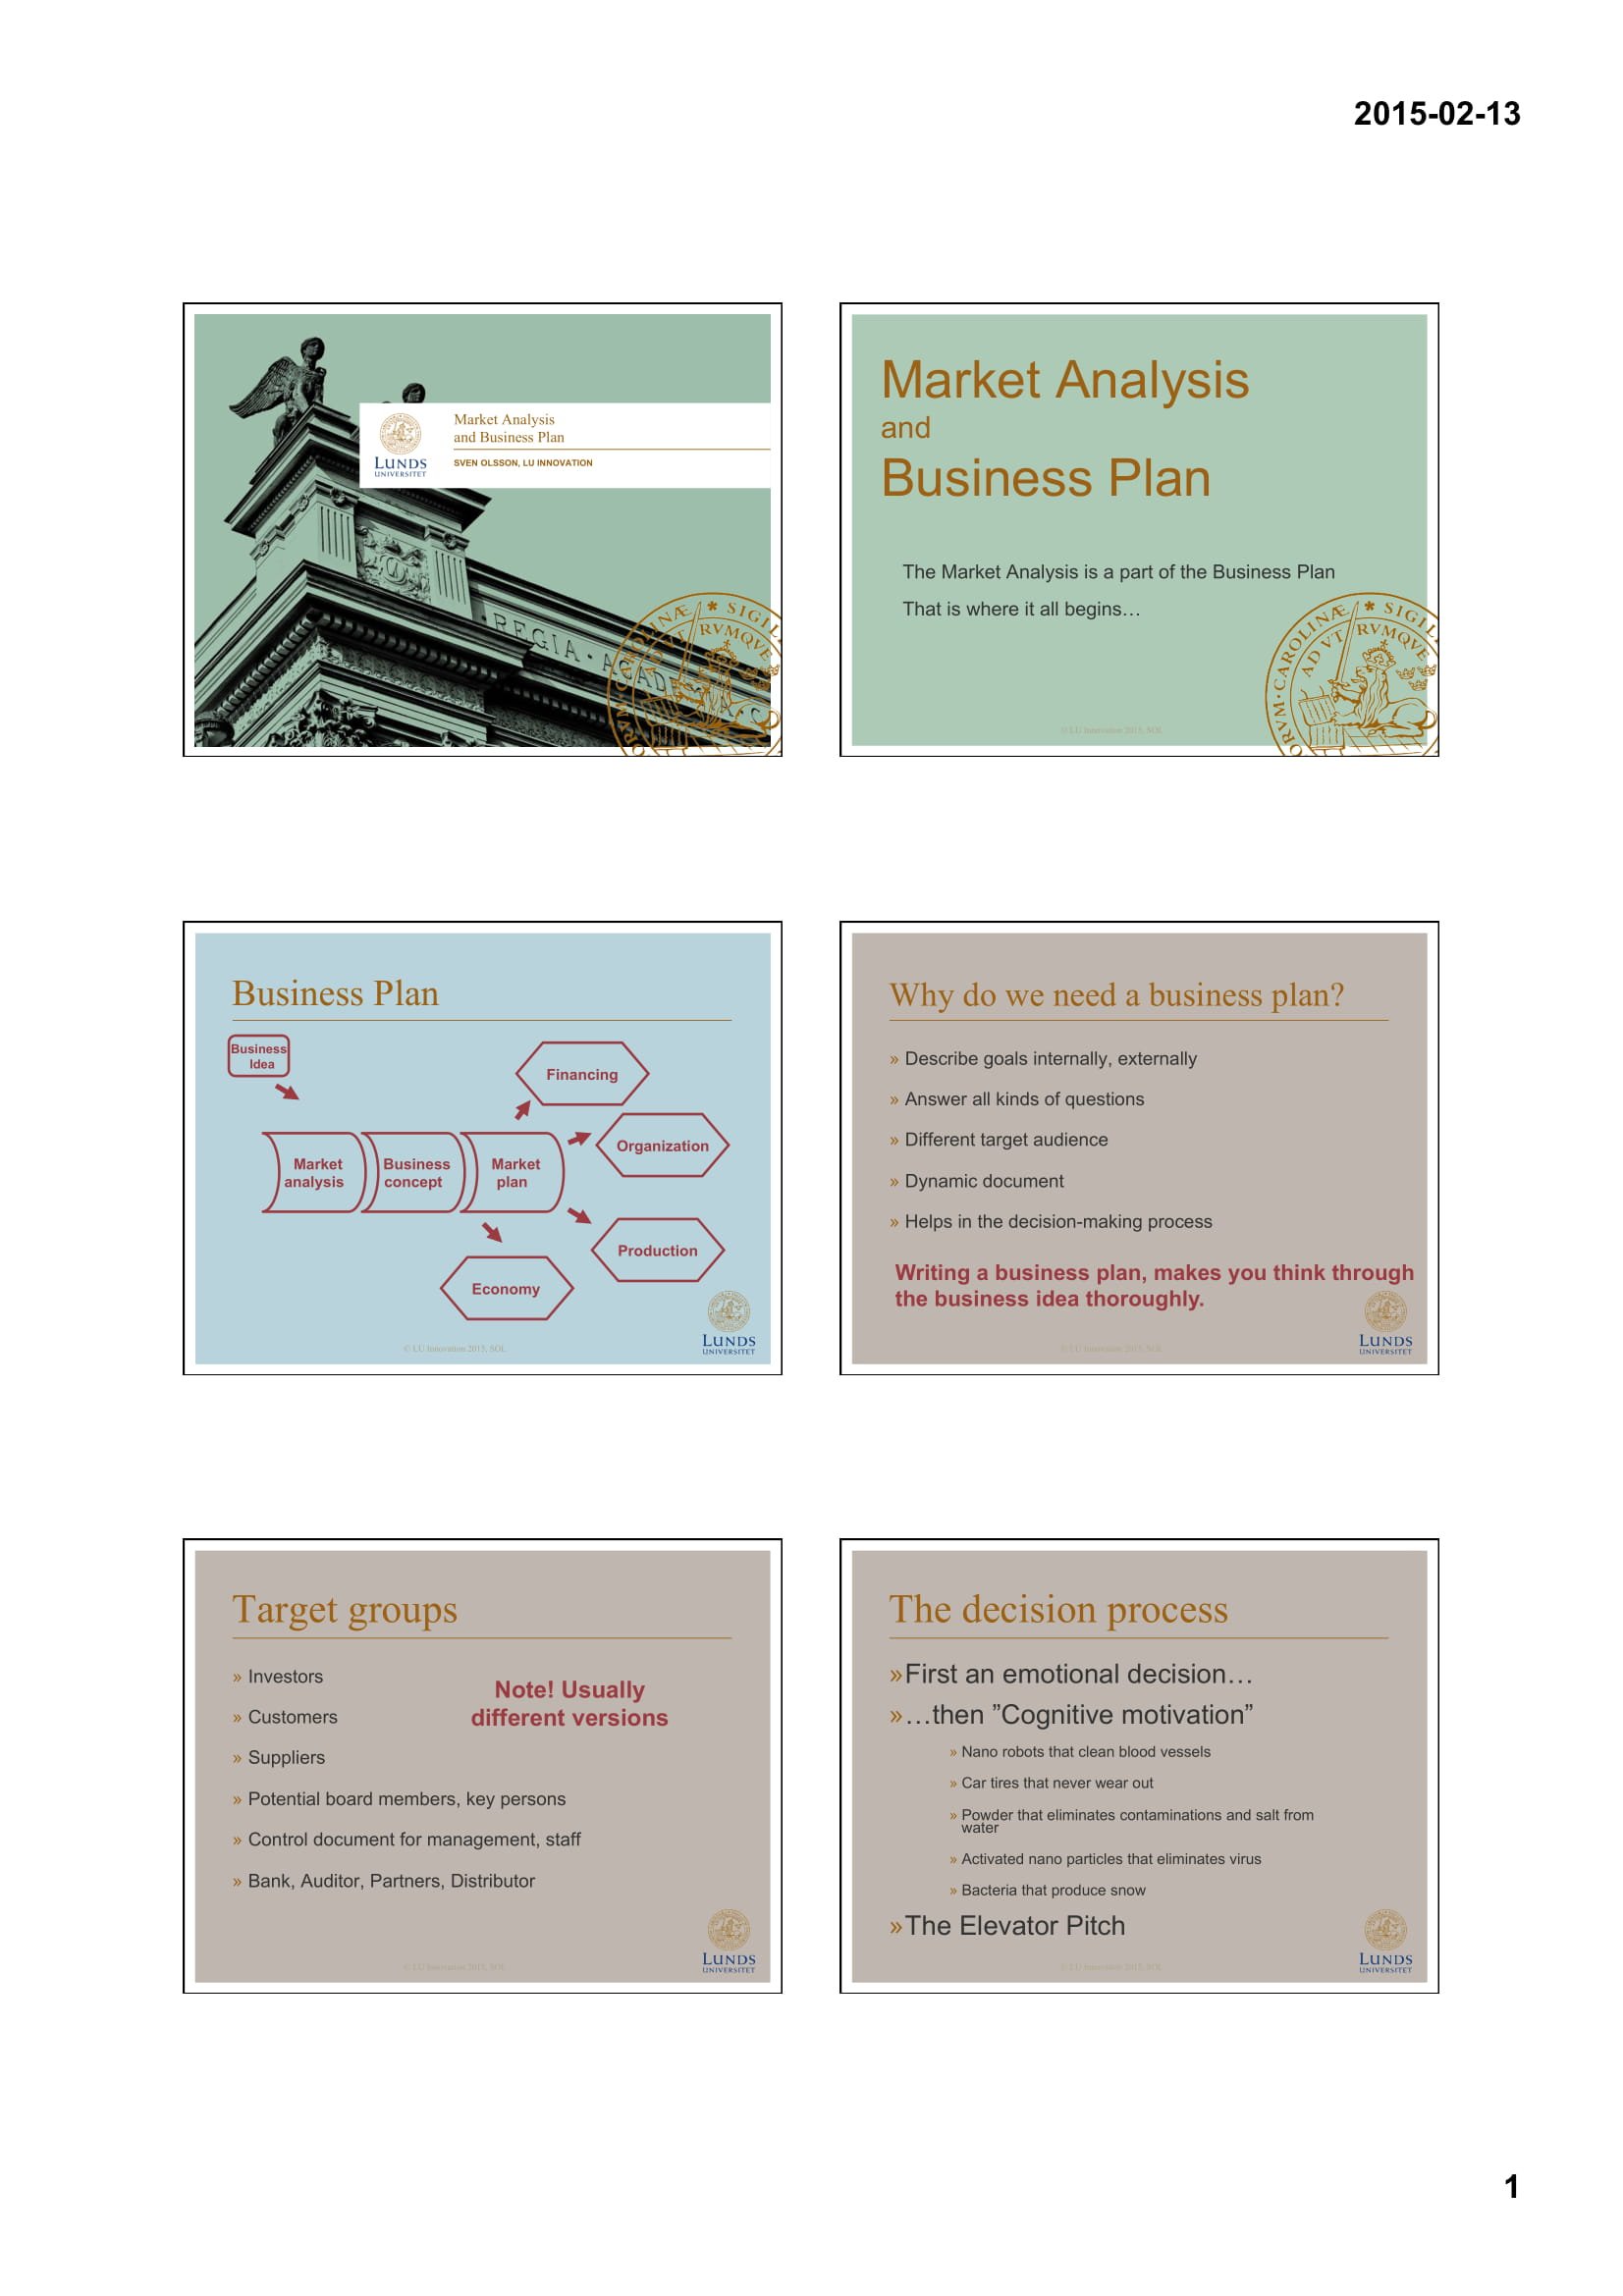 market analysis and business plan example 1